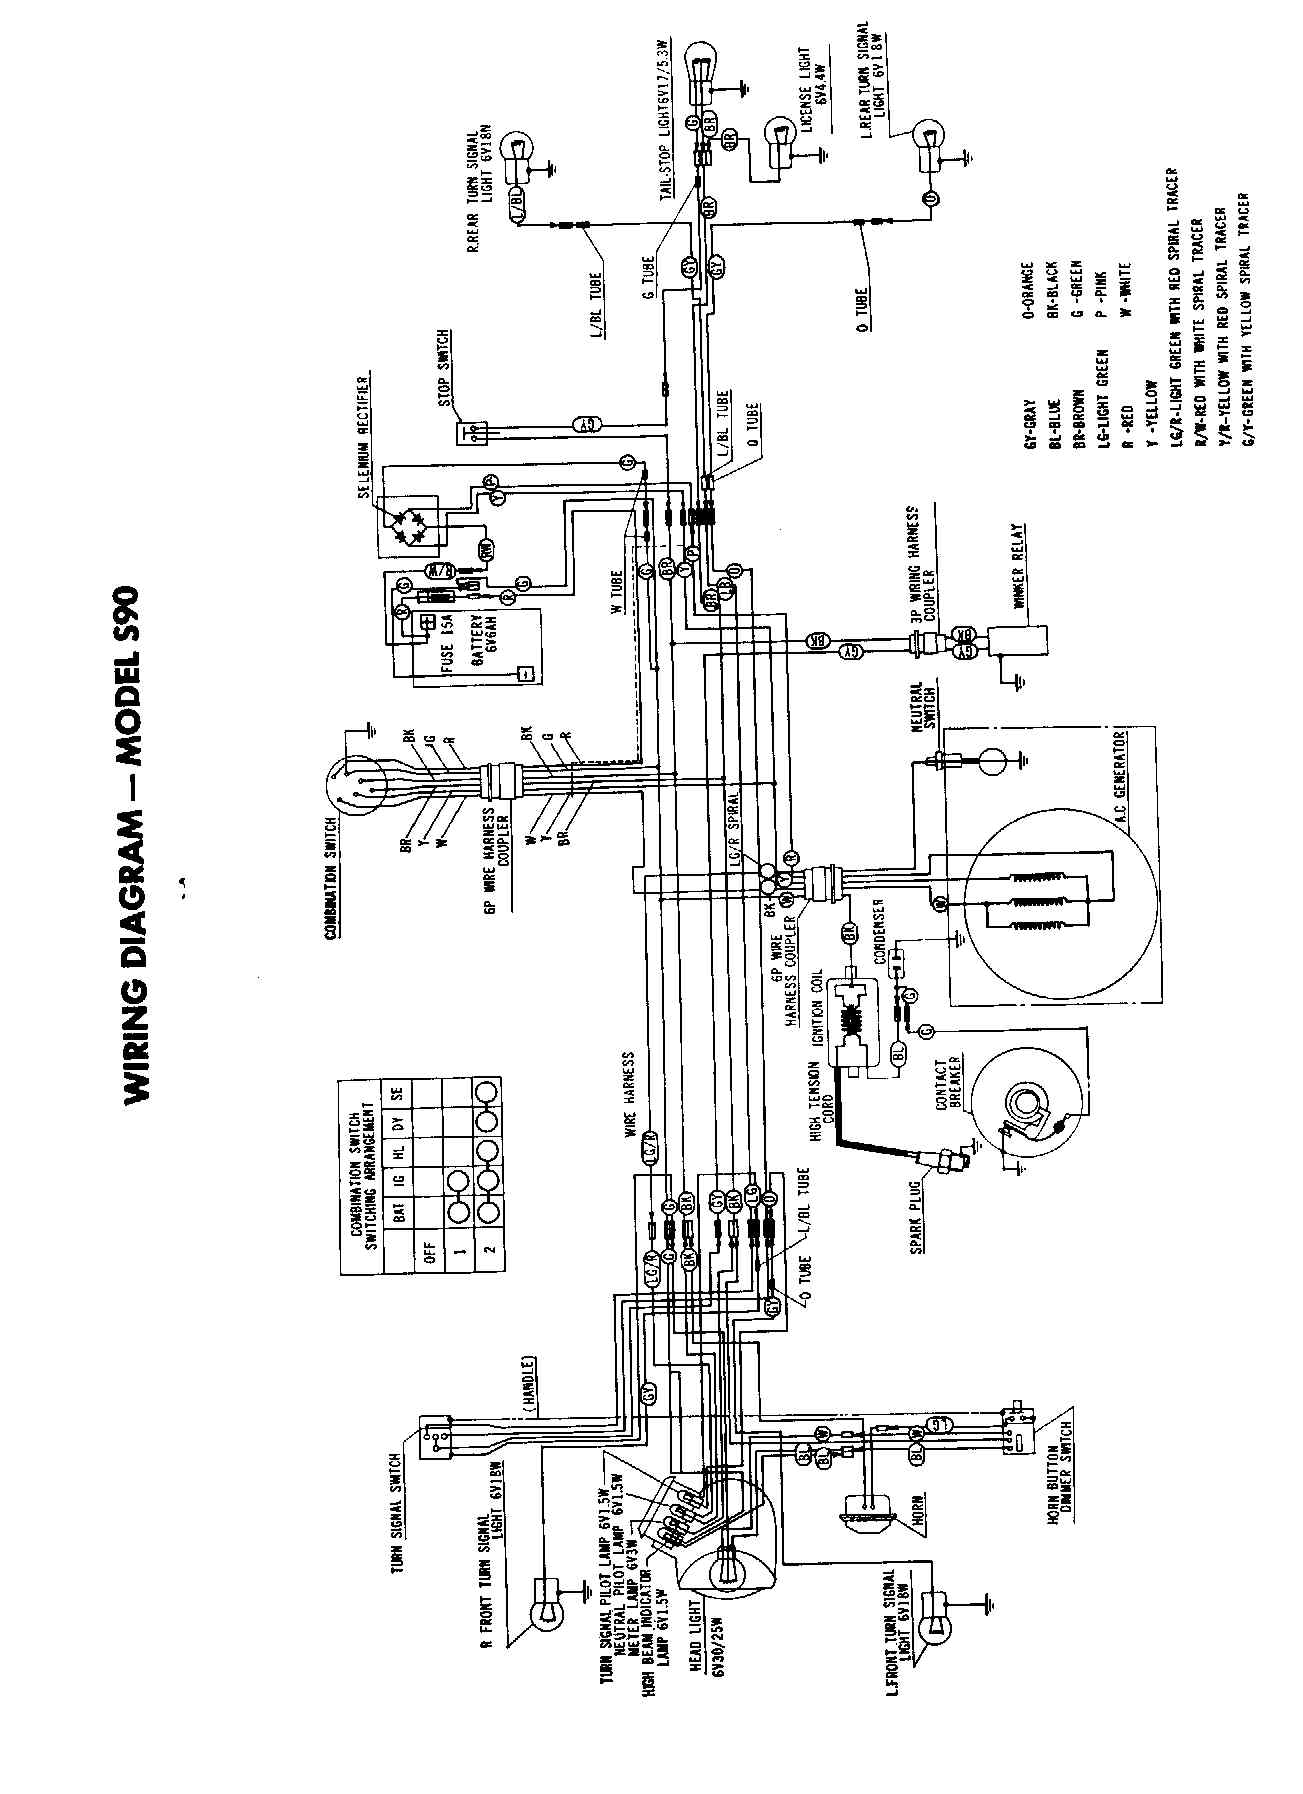 Discussion T21574 ds718925 also Dual Battery Wiring Diagram Ford E350 together with Wiringdiagrams also 85 Honda Rebel 250 Wiring Diagram also Jeep Wiring Diagrams 1985 Cherokee 2 1 Engine. on 1983 subaru wiring diagram